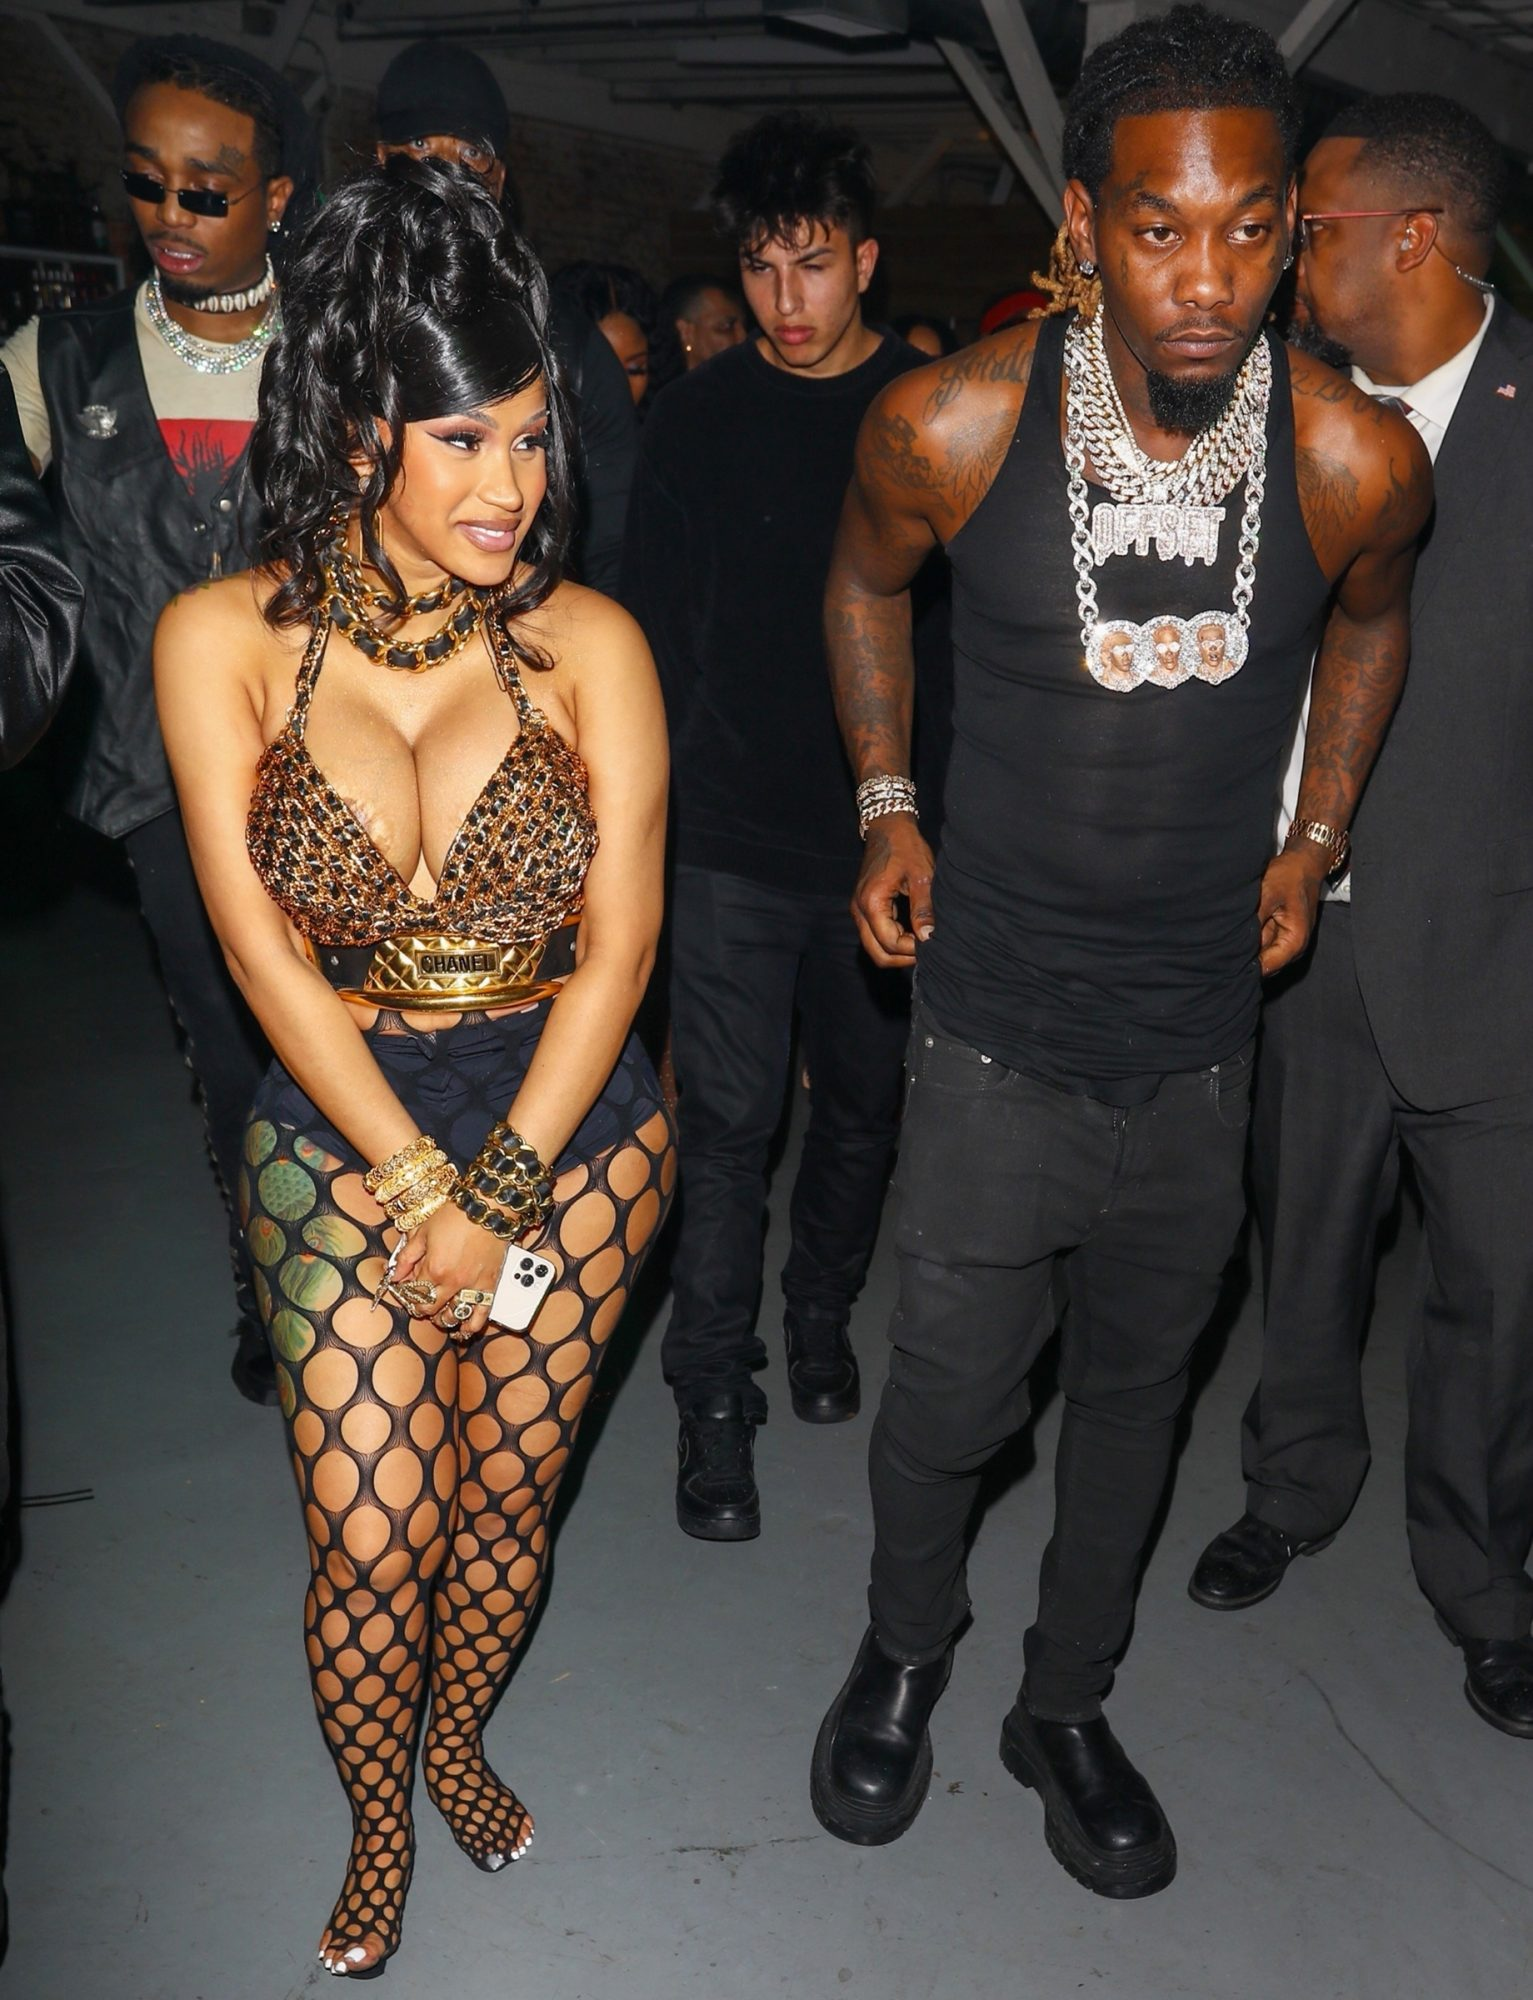 Cardi B is a showstopper as she exits her star-studded 29th birthday party with hubby Offset in Los Angeles. Cardi made sure to put her curvy physique on display donning an animal print bra-shirt with black fishnet stockings and heels.